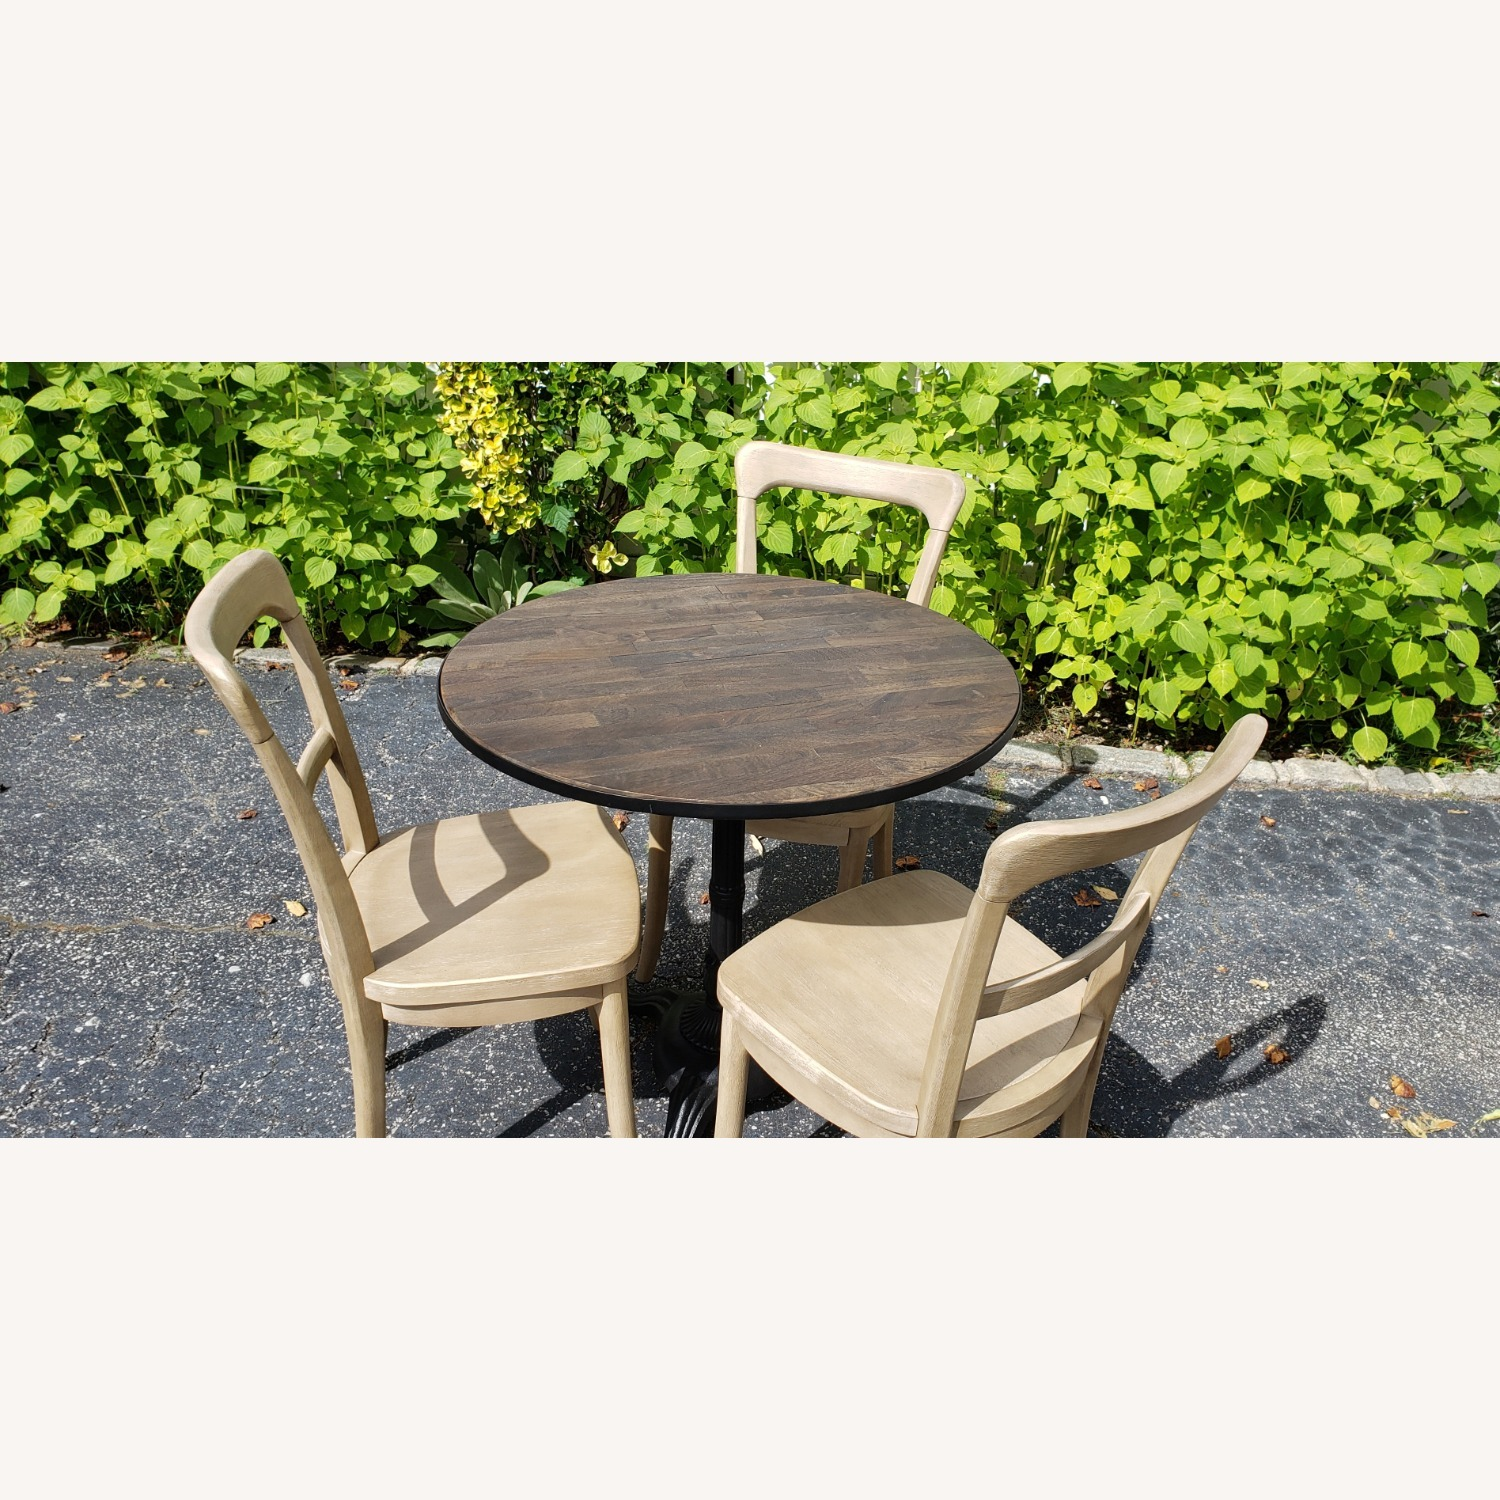 Pottery Barn Rae Bistro Dining Table Set with 3 Chairs - image-2